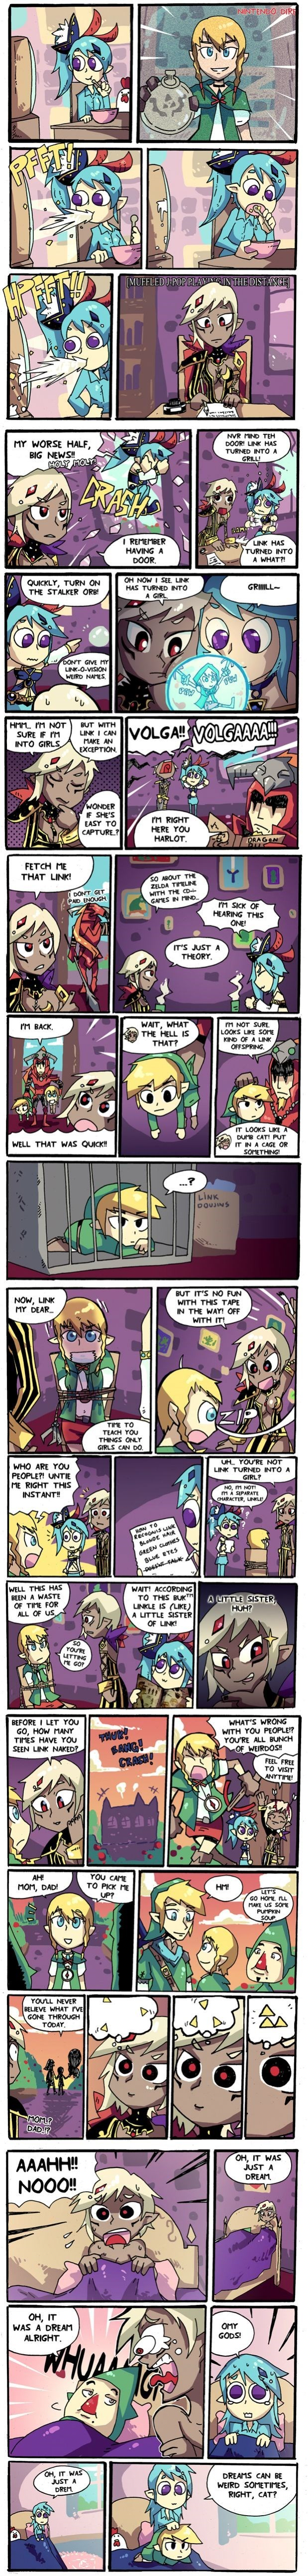 Fan Art linkle hyrule warriors web comics - 8587090432